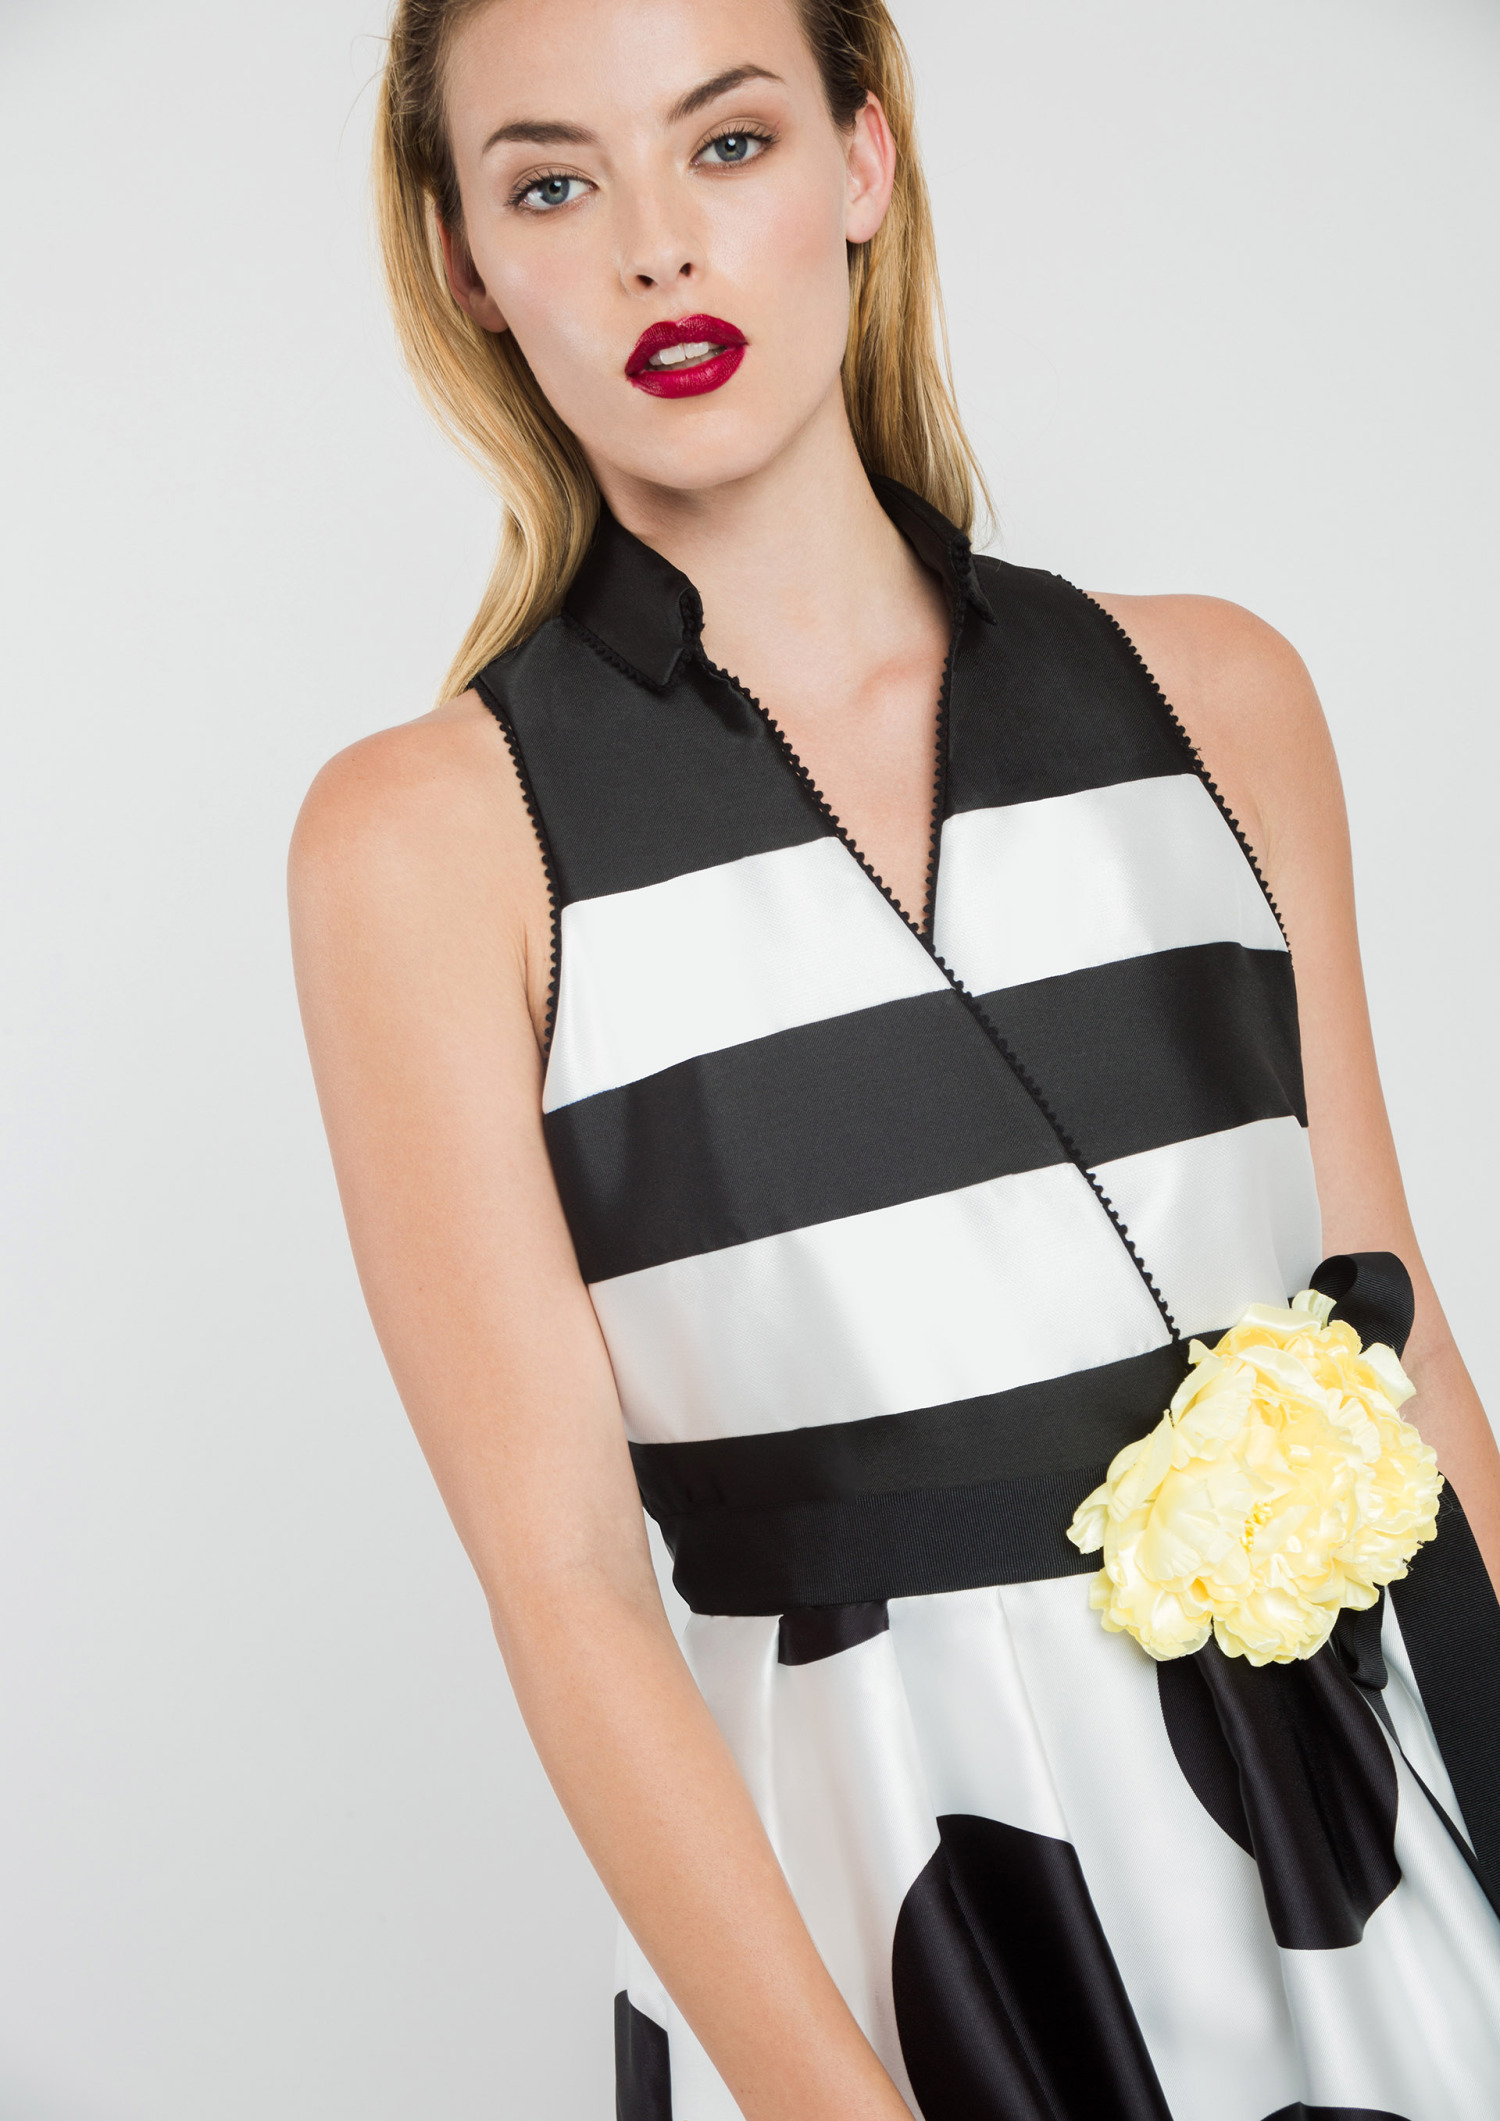 Black and White Dress with Collar